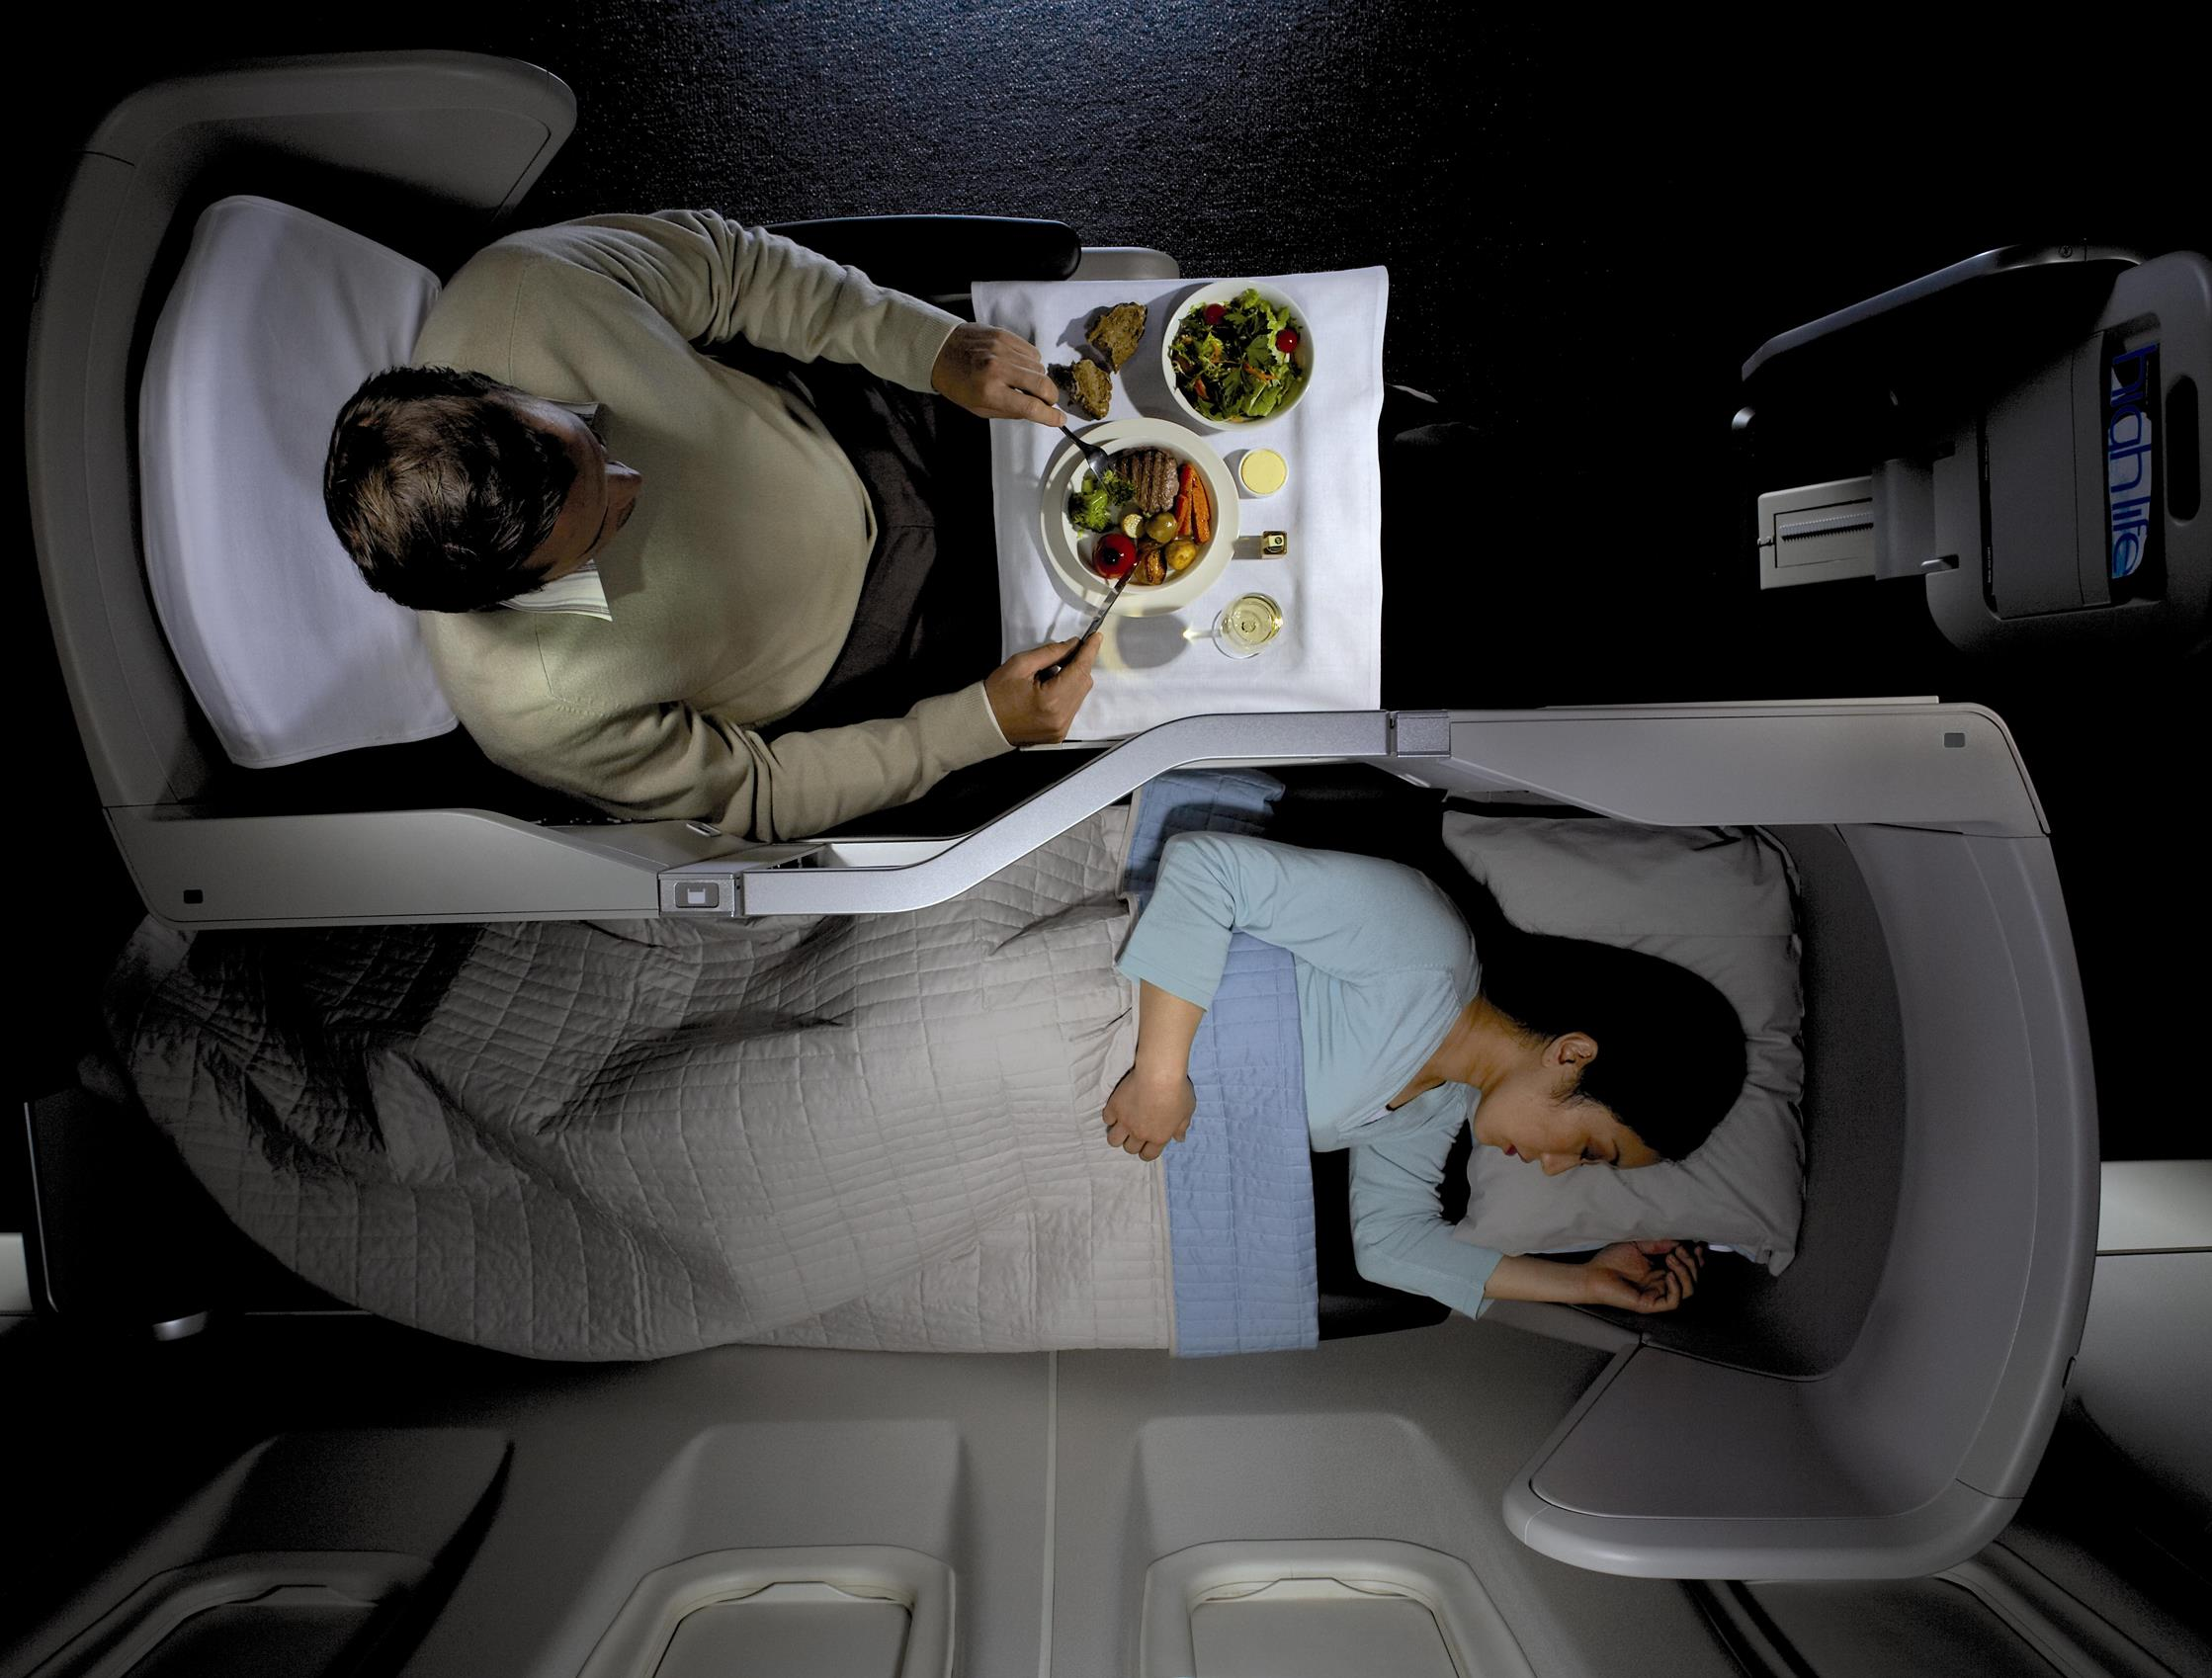 British Airways_inflight food_2014_007